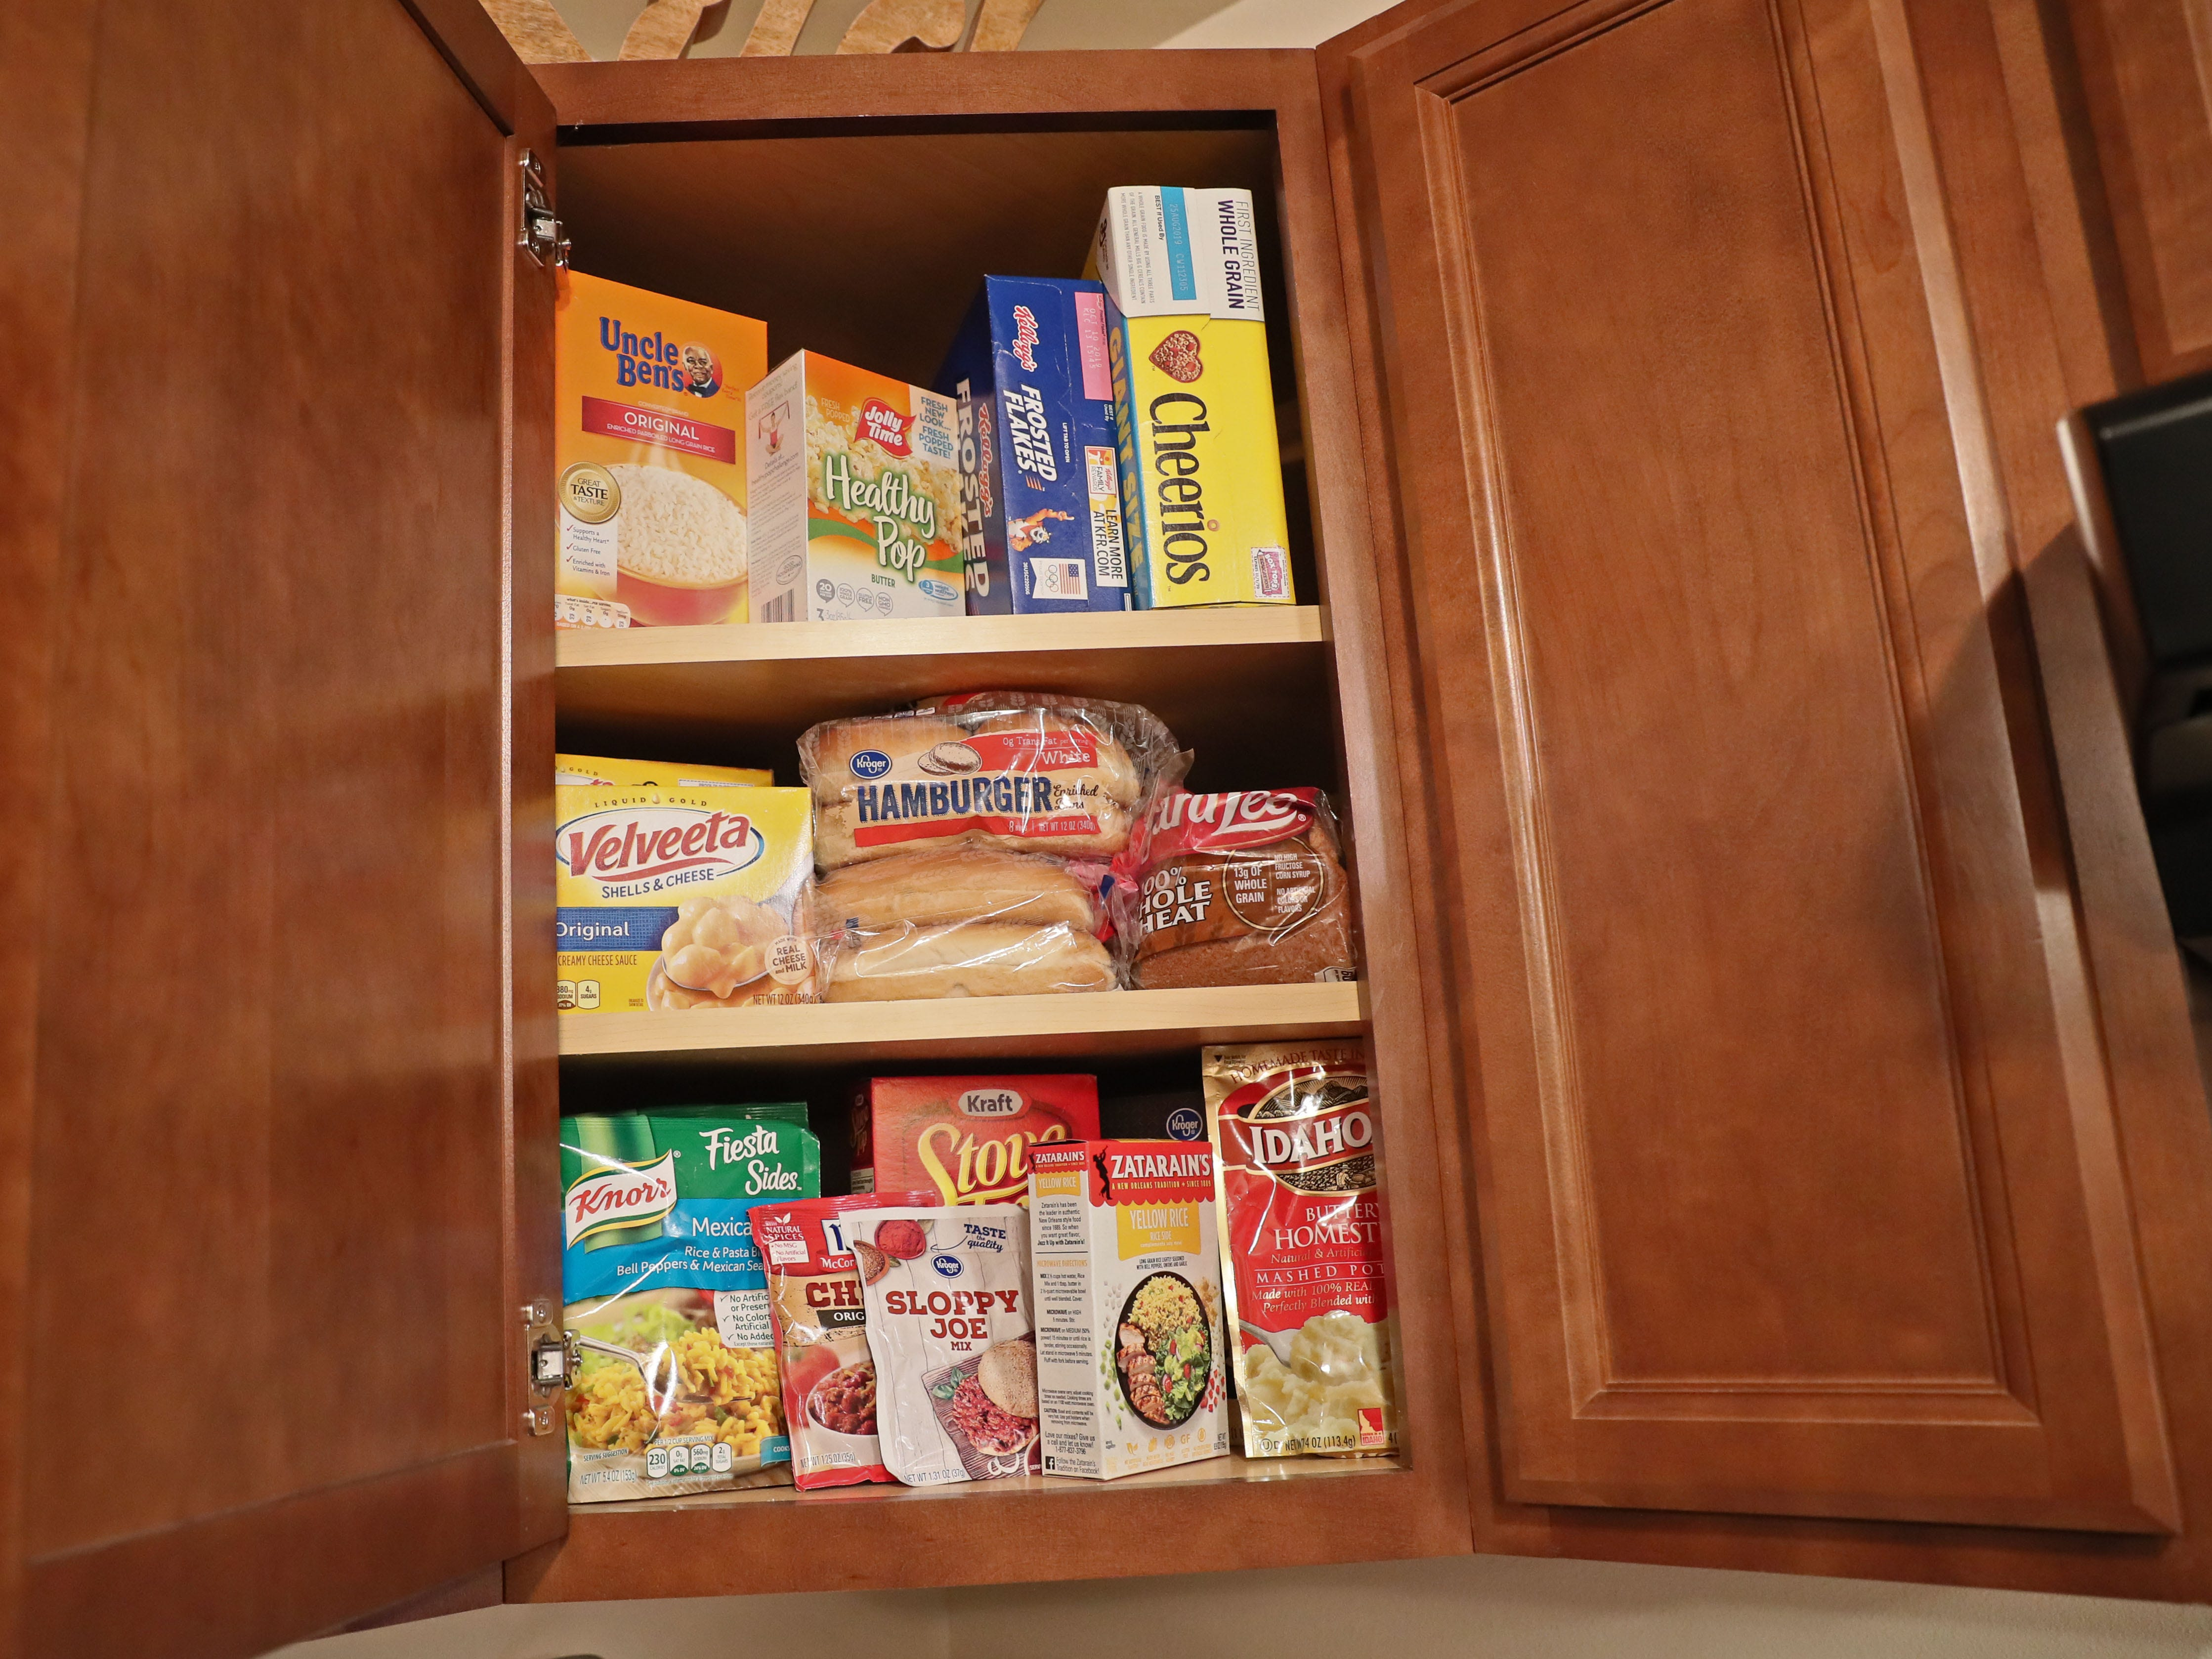 The cupboards were stocked.